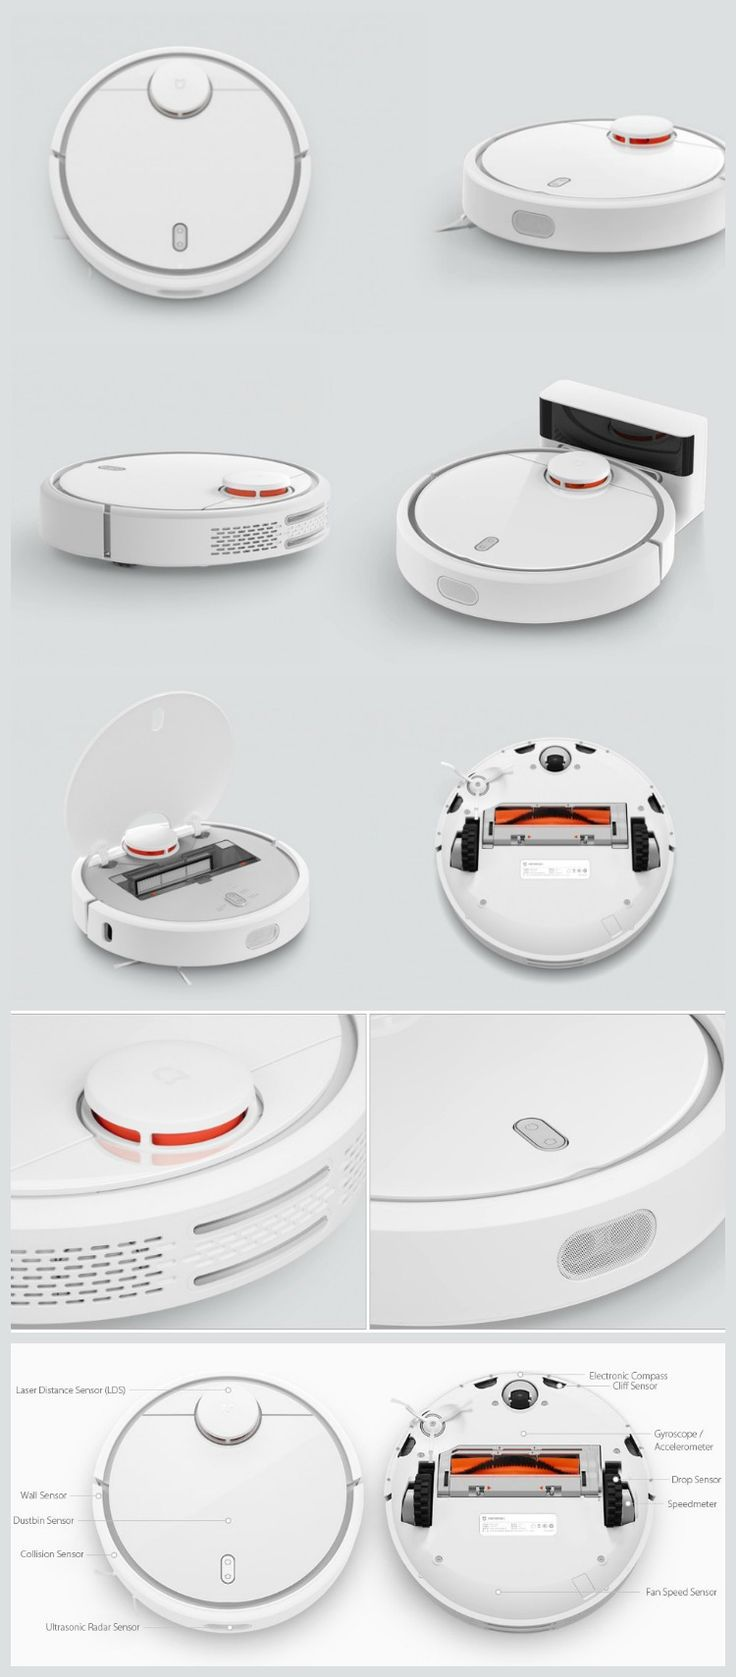 Geeky gadgets page 2 of 5863 gadgets and technology news - Xiaomi Challenges Roomba For The King Of Robot Vacuums Throne With The Xiaomi Robotic Vacuum That